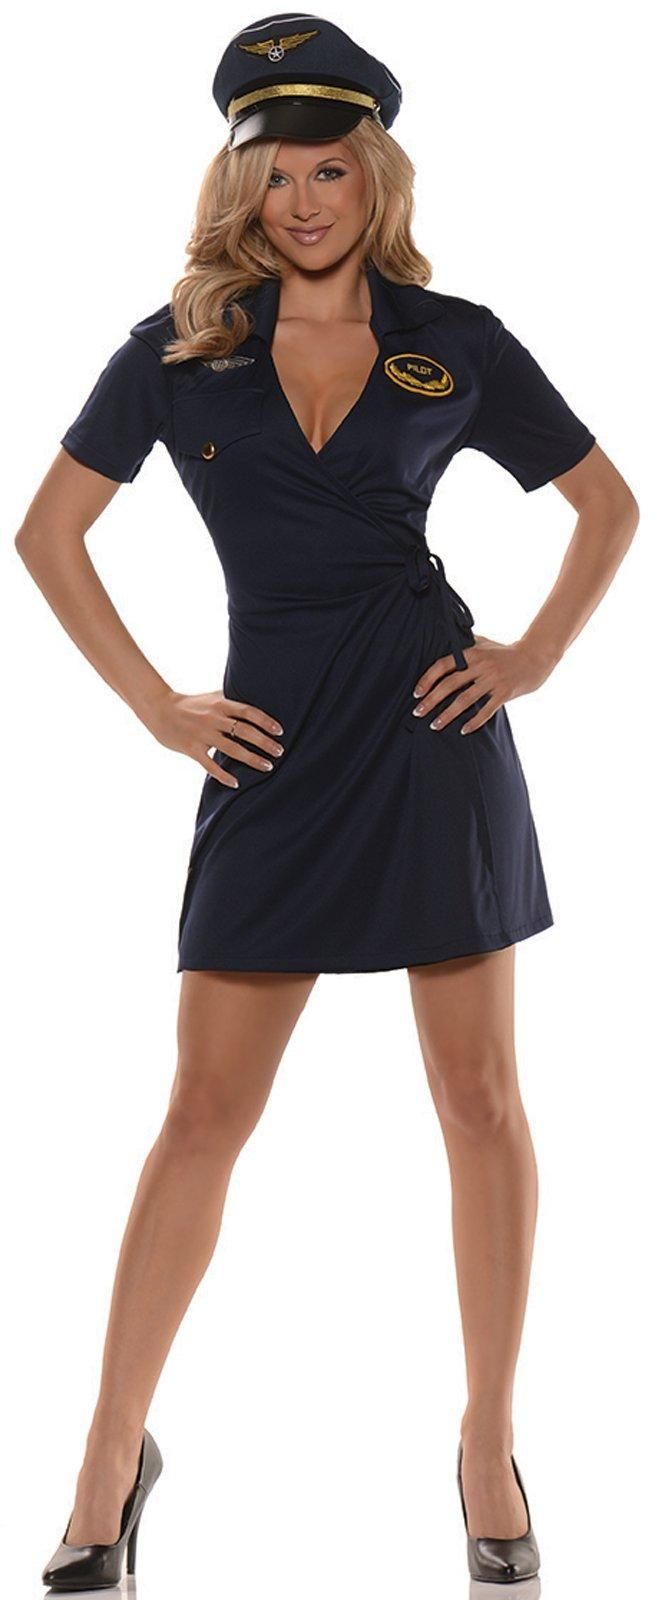 Mile High Pilot Costume For Women from Buycostumes.com